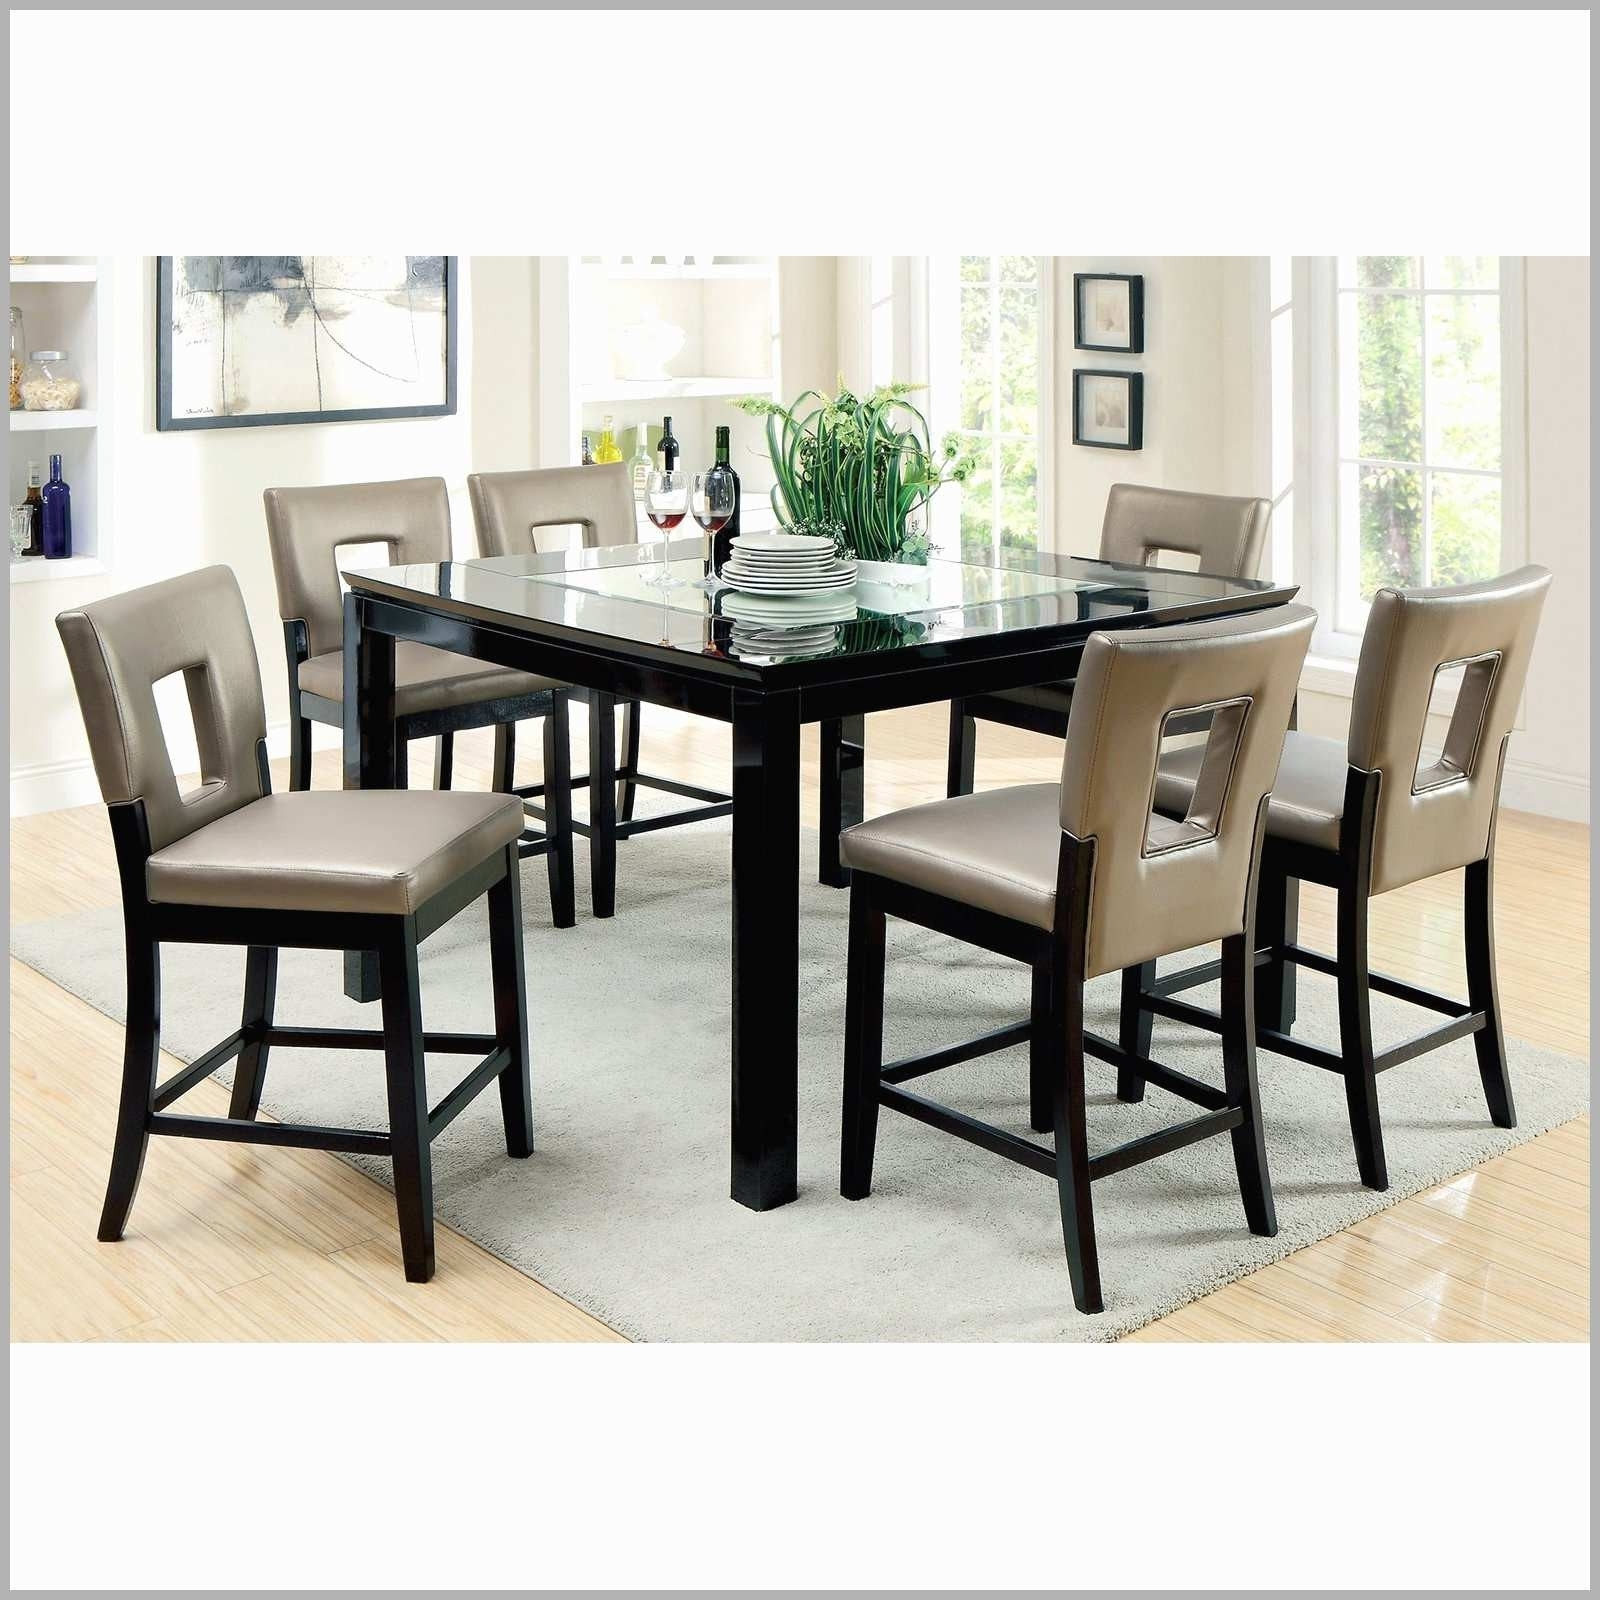 Cheap Dining Tables With Regard To Most Recent Cheap Dining Table Sets Near Me Awesome 8 Seater Dining Table Set (View 14 of 25)